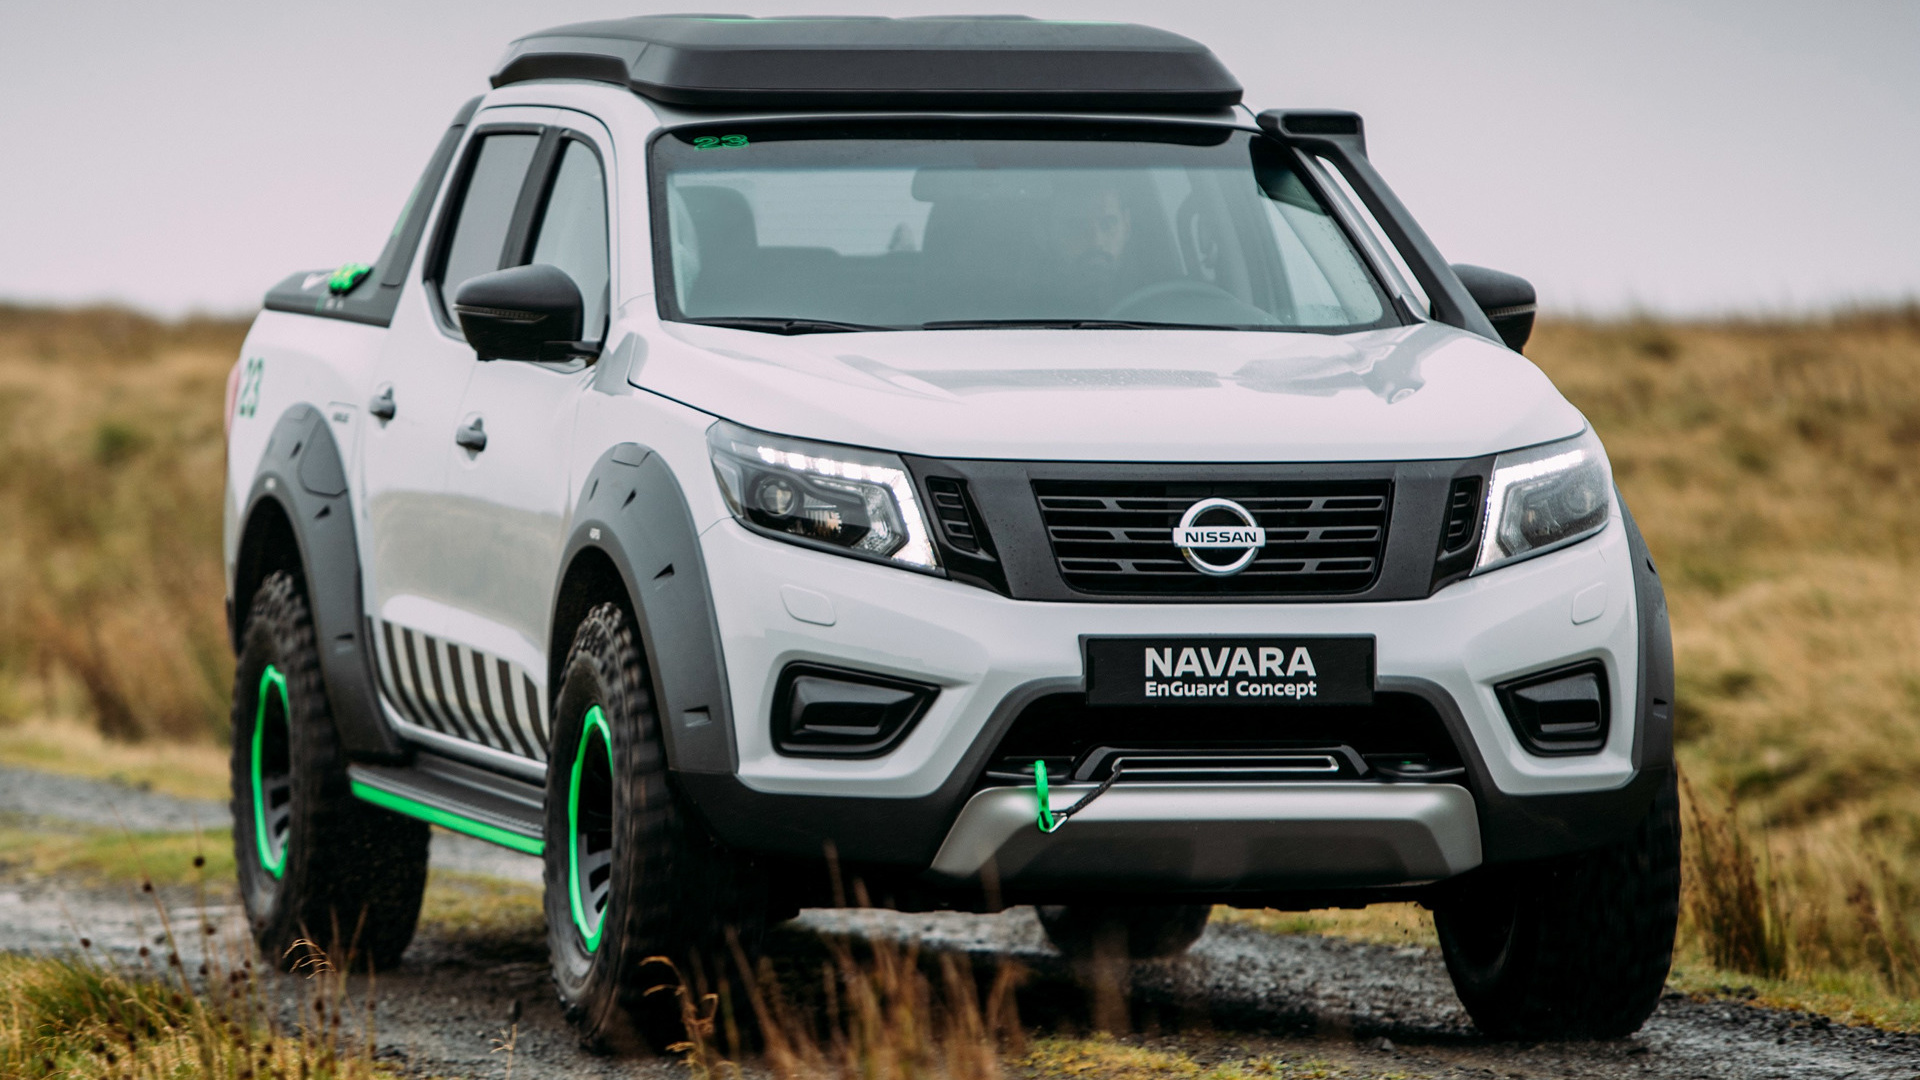 2016 nissan frontier wiring diagram mictuning push switch navara enguard concept (2016) wallpapers and hd images - car pixel